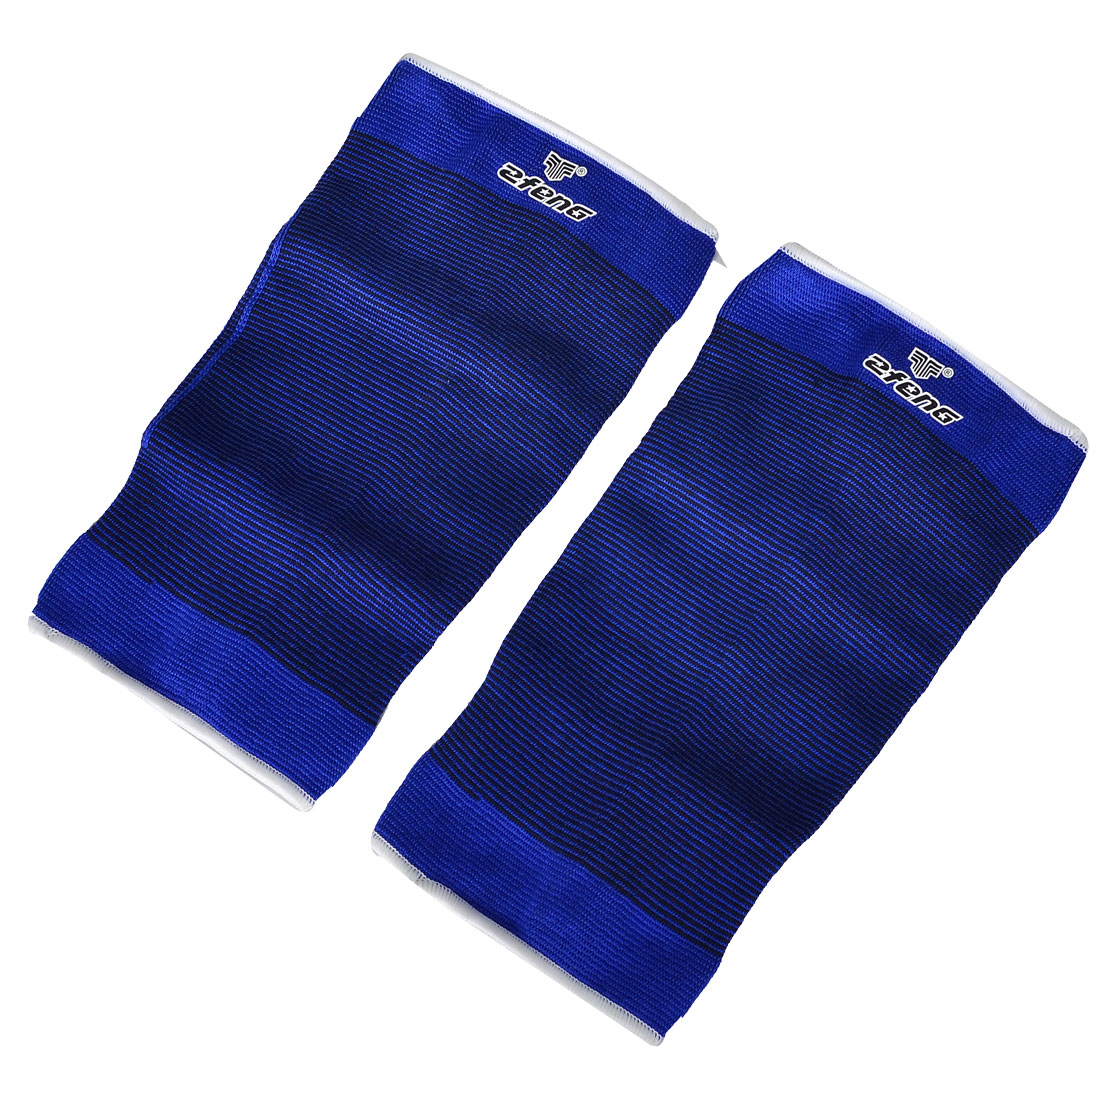 Pair Sports Protection Striped Elastic Knee Support Sleeve Brace Blue Black